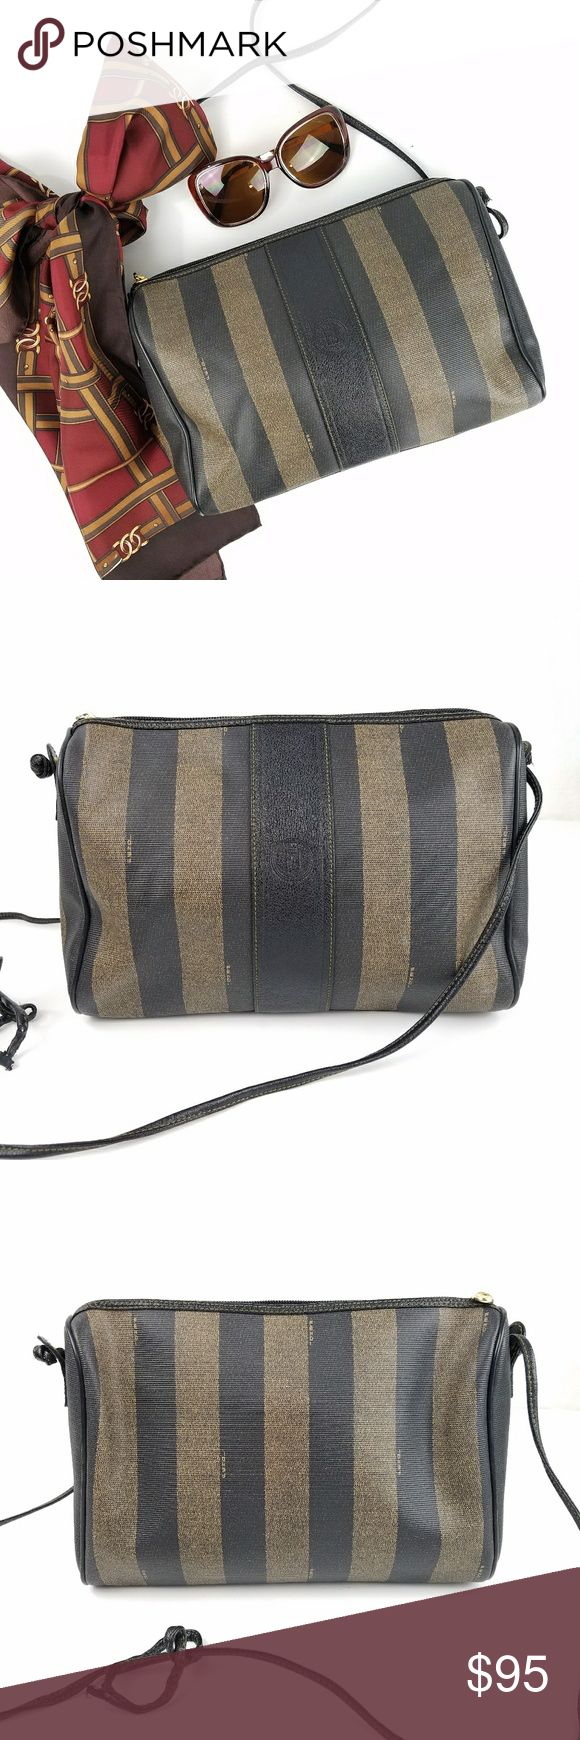 "Vintage Fendi Penguin Striped Shoulder Bag Made in Italy Classic penguin stripe with Fendi print throughout Zip top closure with logo zipper pull  1 interior zipper wall pocket Lining is super clean Serial number visible 11.25"" x 9"" 56"" long shoulder/crossbody strap Excellent vintage condition - shoulder strap is torn, but can be tied in a knot to not be visible   PLEASE READ CLOSET INFO AND POLICIES POST Fendi Bags Crossbody Bags"